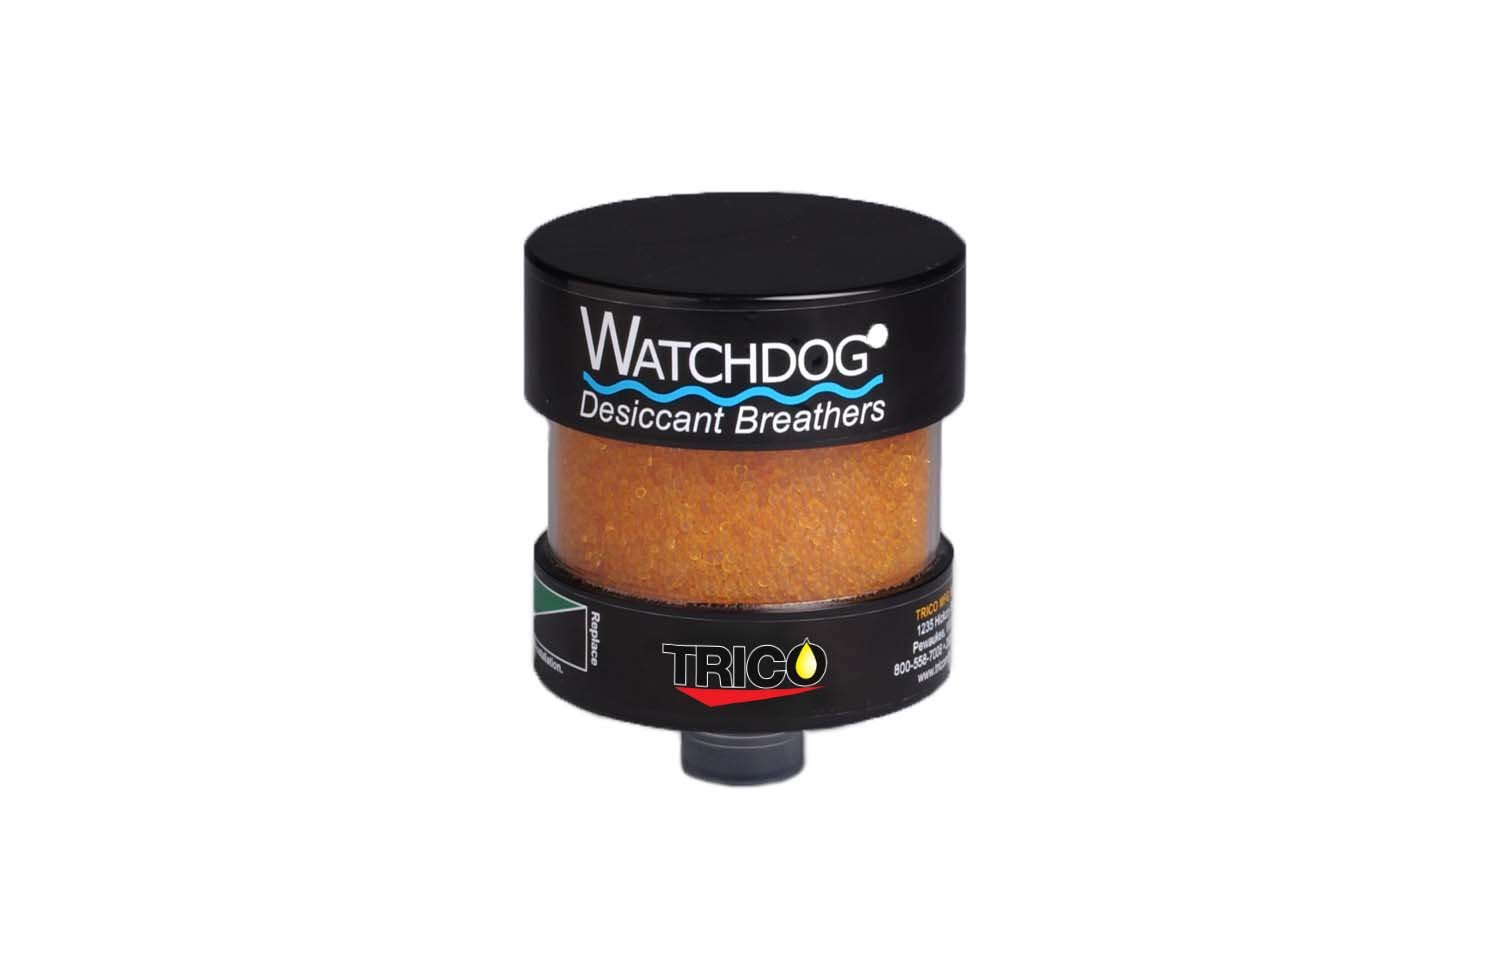 """Trico Watchdog Desiccant Breather, 0.4 lbs Water Capacity, 1"""" Male, 5"""" Diameter x 6-1/4"""" Height"""